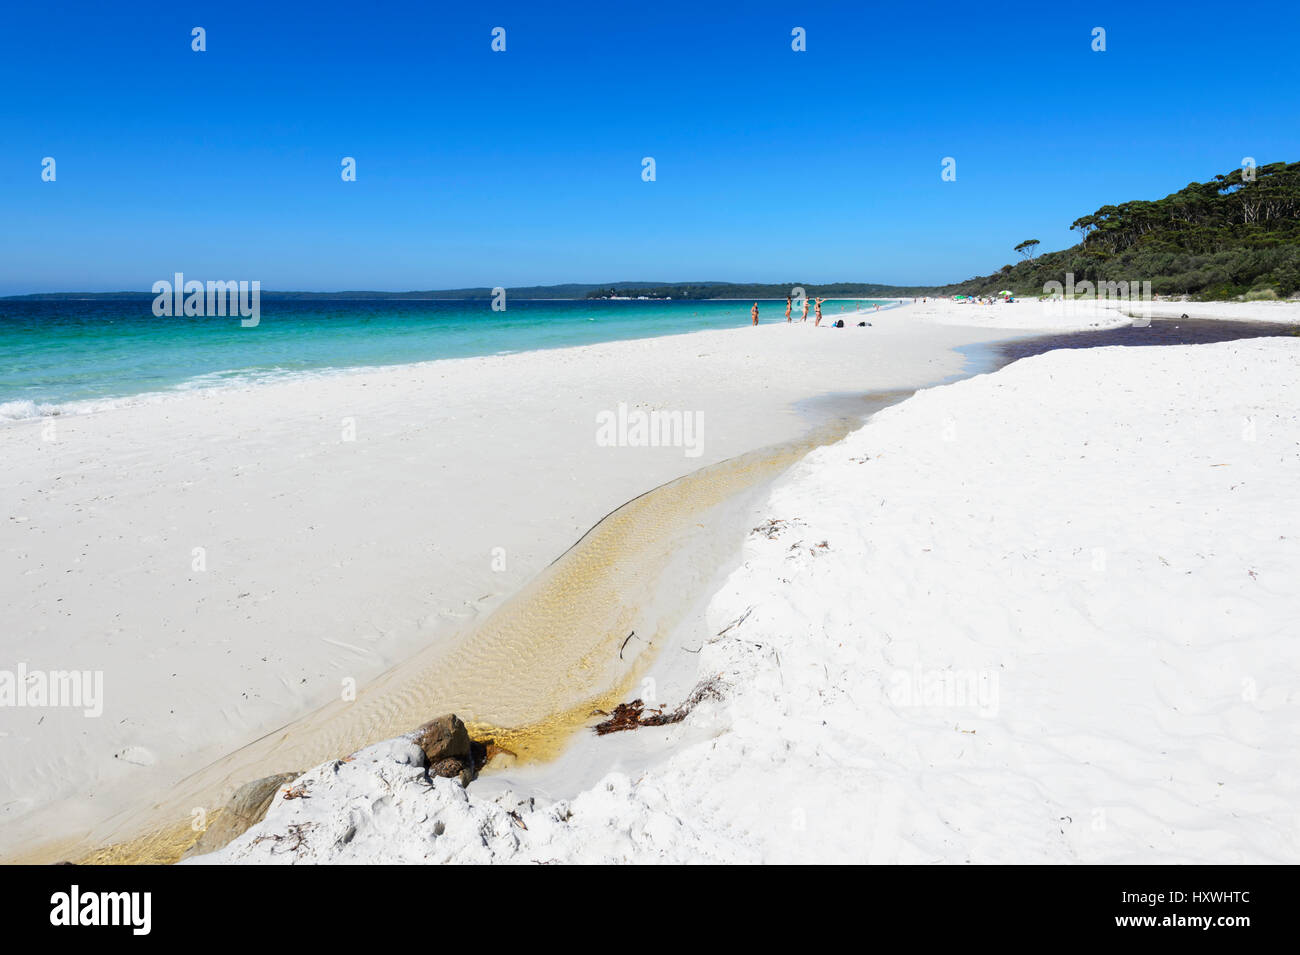 hyams-beach-is-a-spectacular-stretch-of-